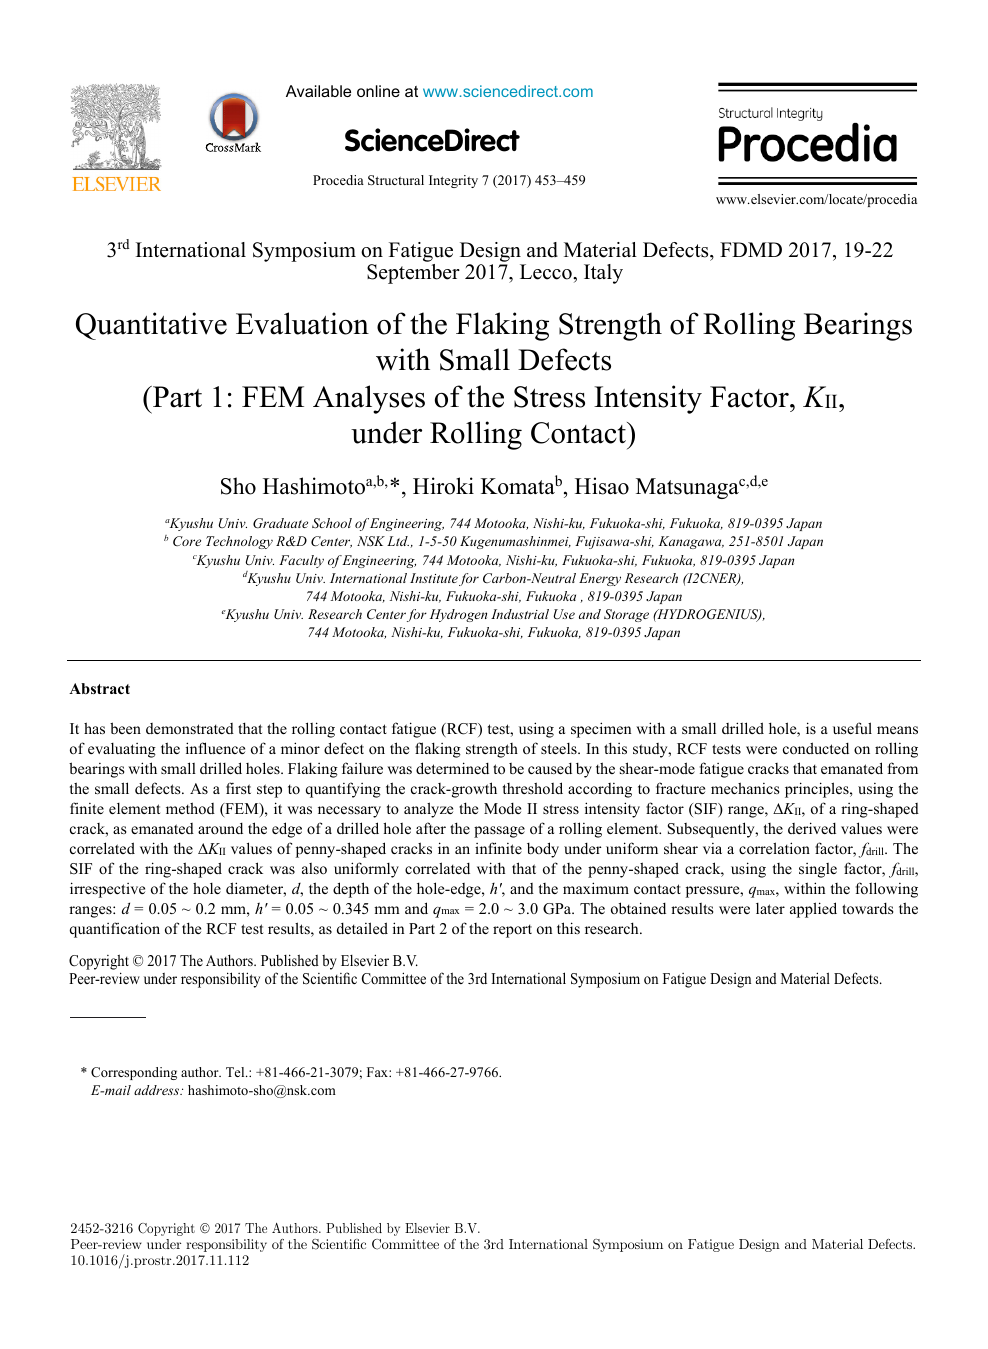 Quantitative Evaluation Of The Flaking Strength Of Rolling